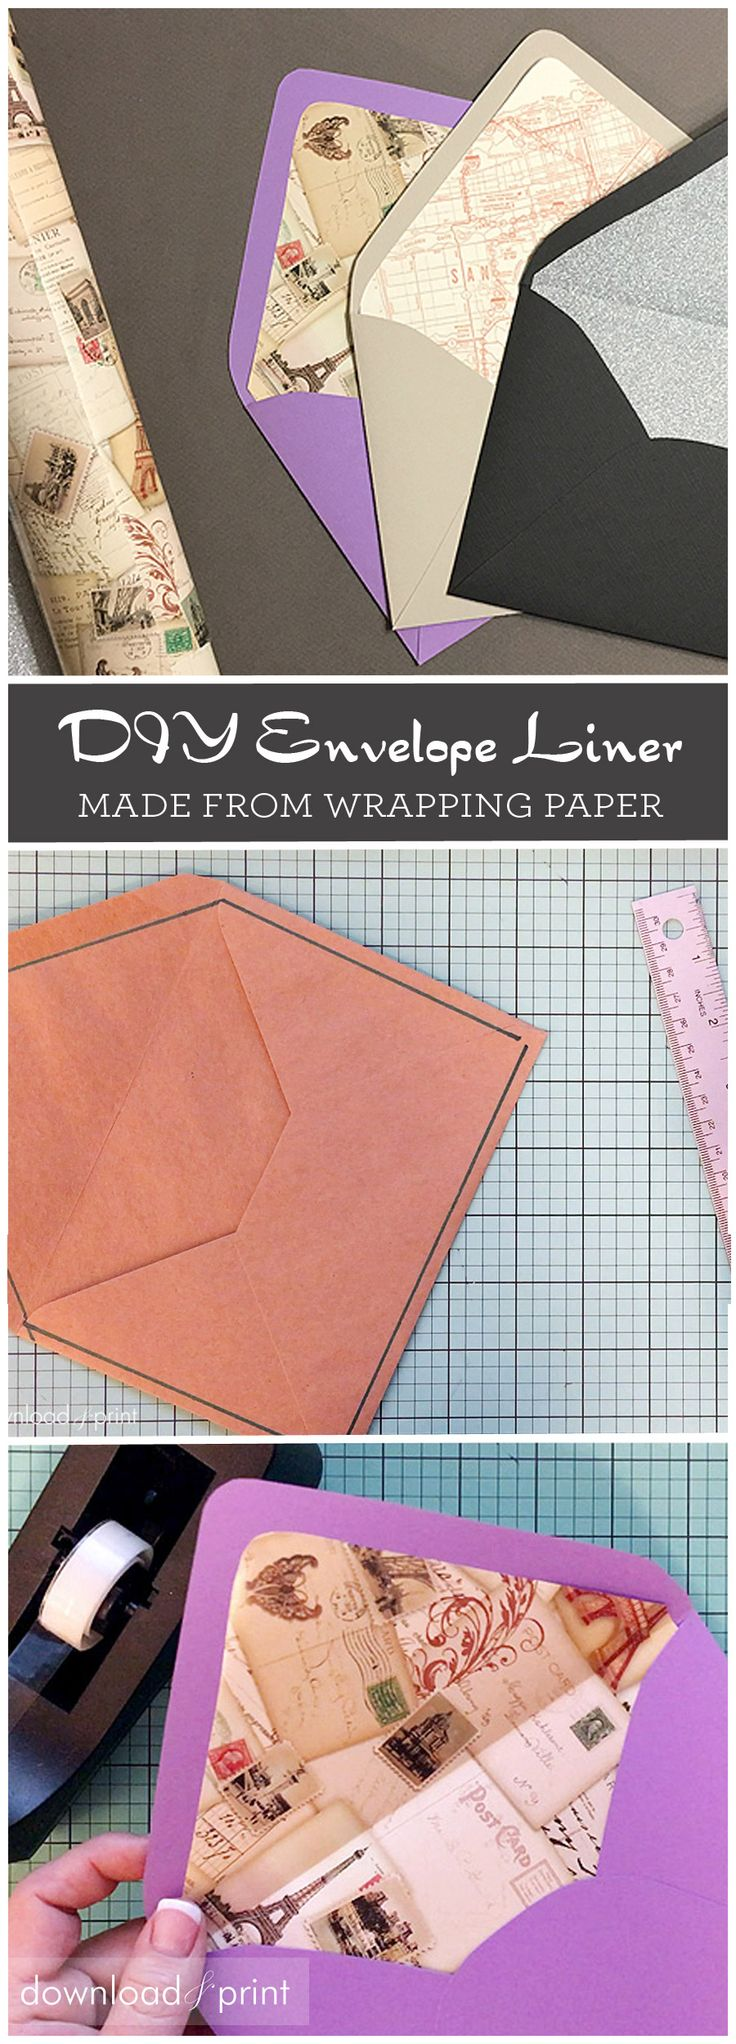 Learn how to upgrade your envelopes in a jiffy with wrapping paper. Making an envelope liner from wrapper paper is easy, and adds instant style to plain envelopes. I'll show you how...